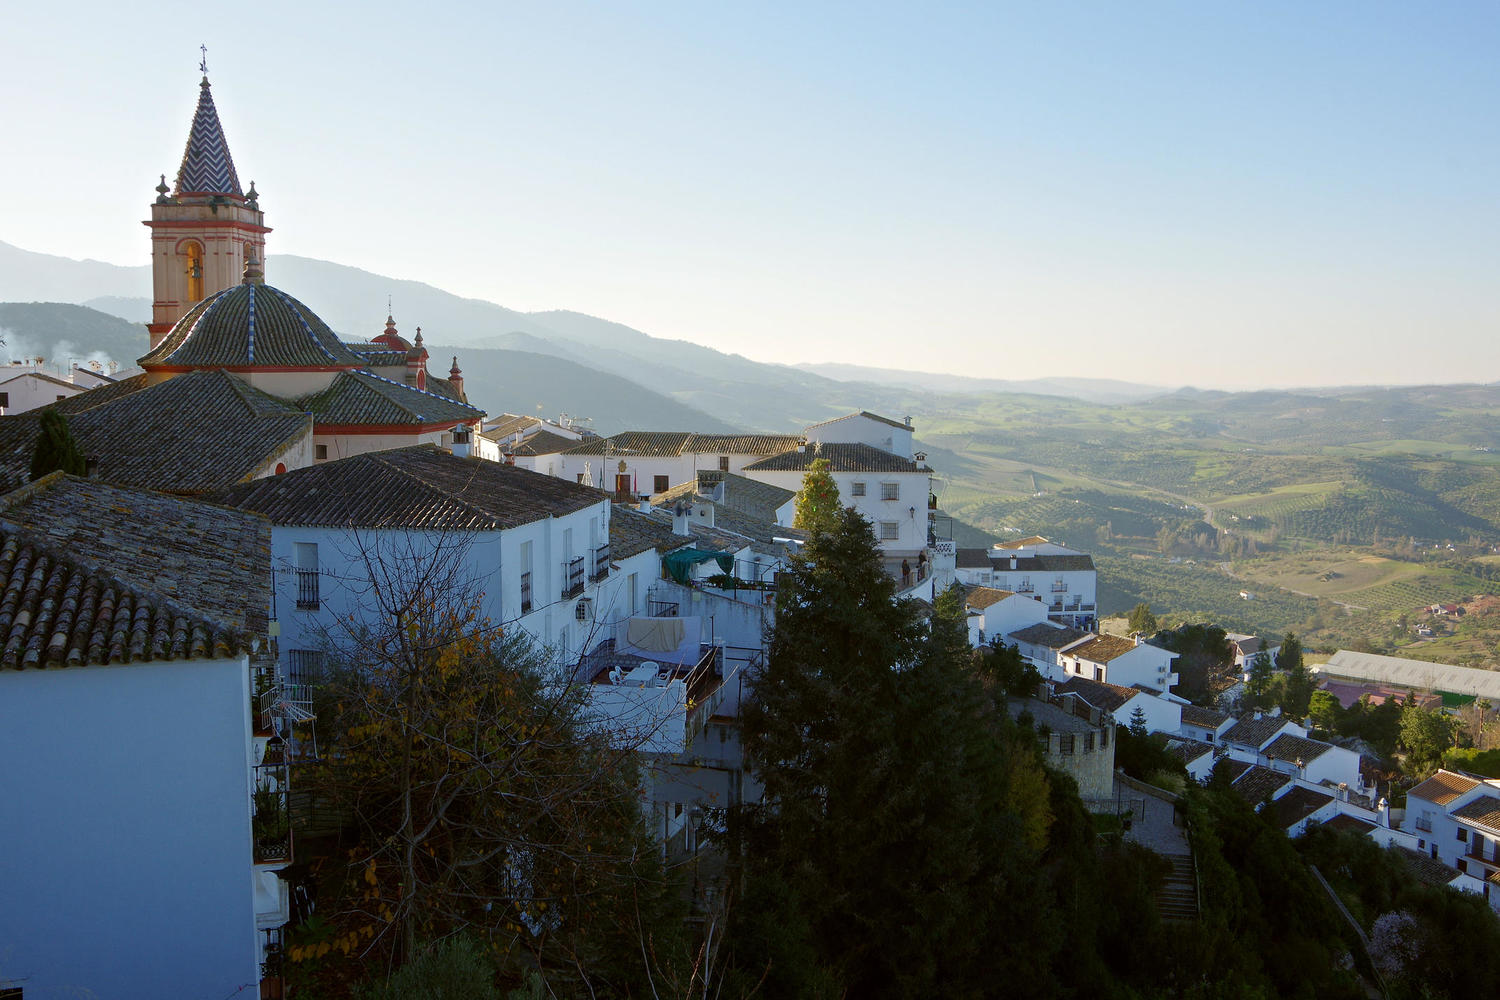 A-Z of Andalucia: part two | The Pothole | Pura Aventura